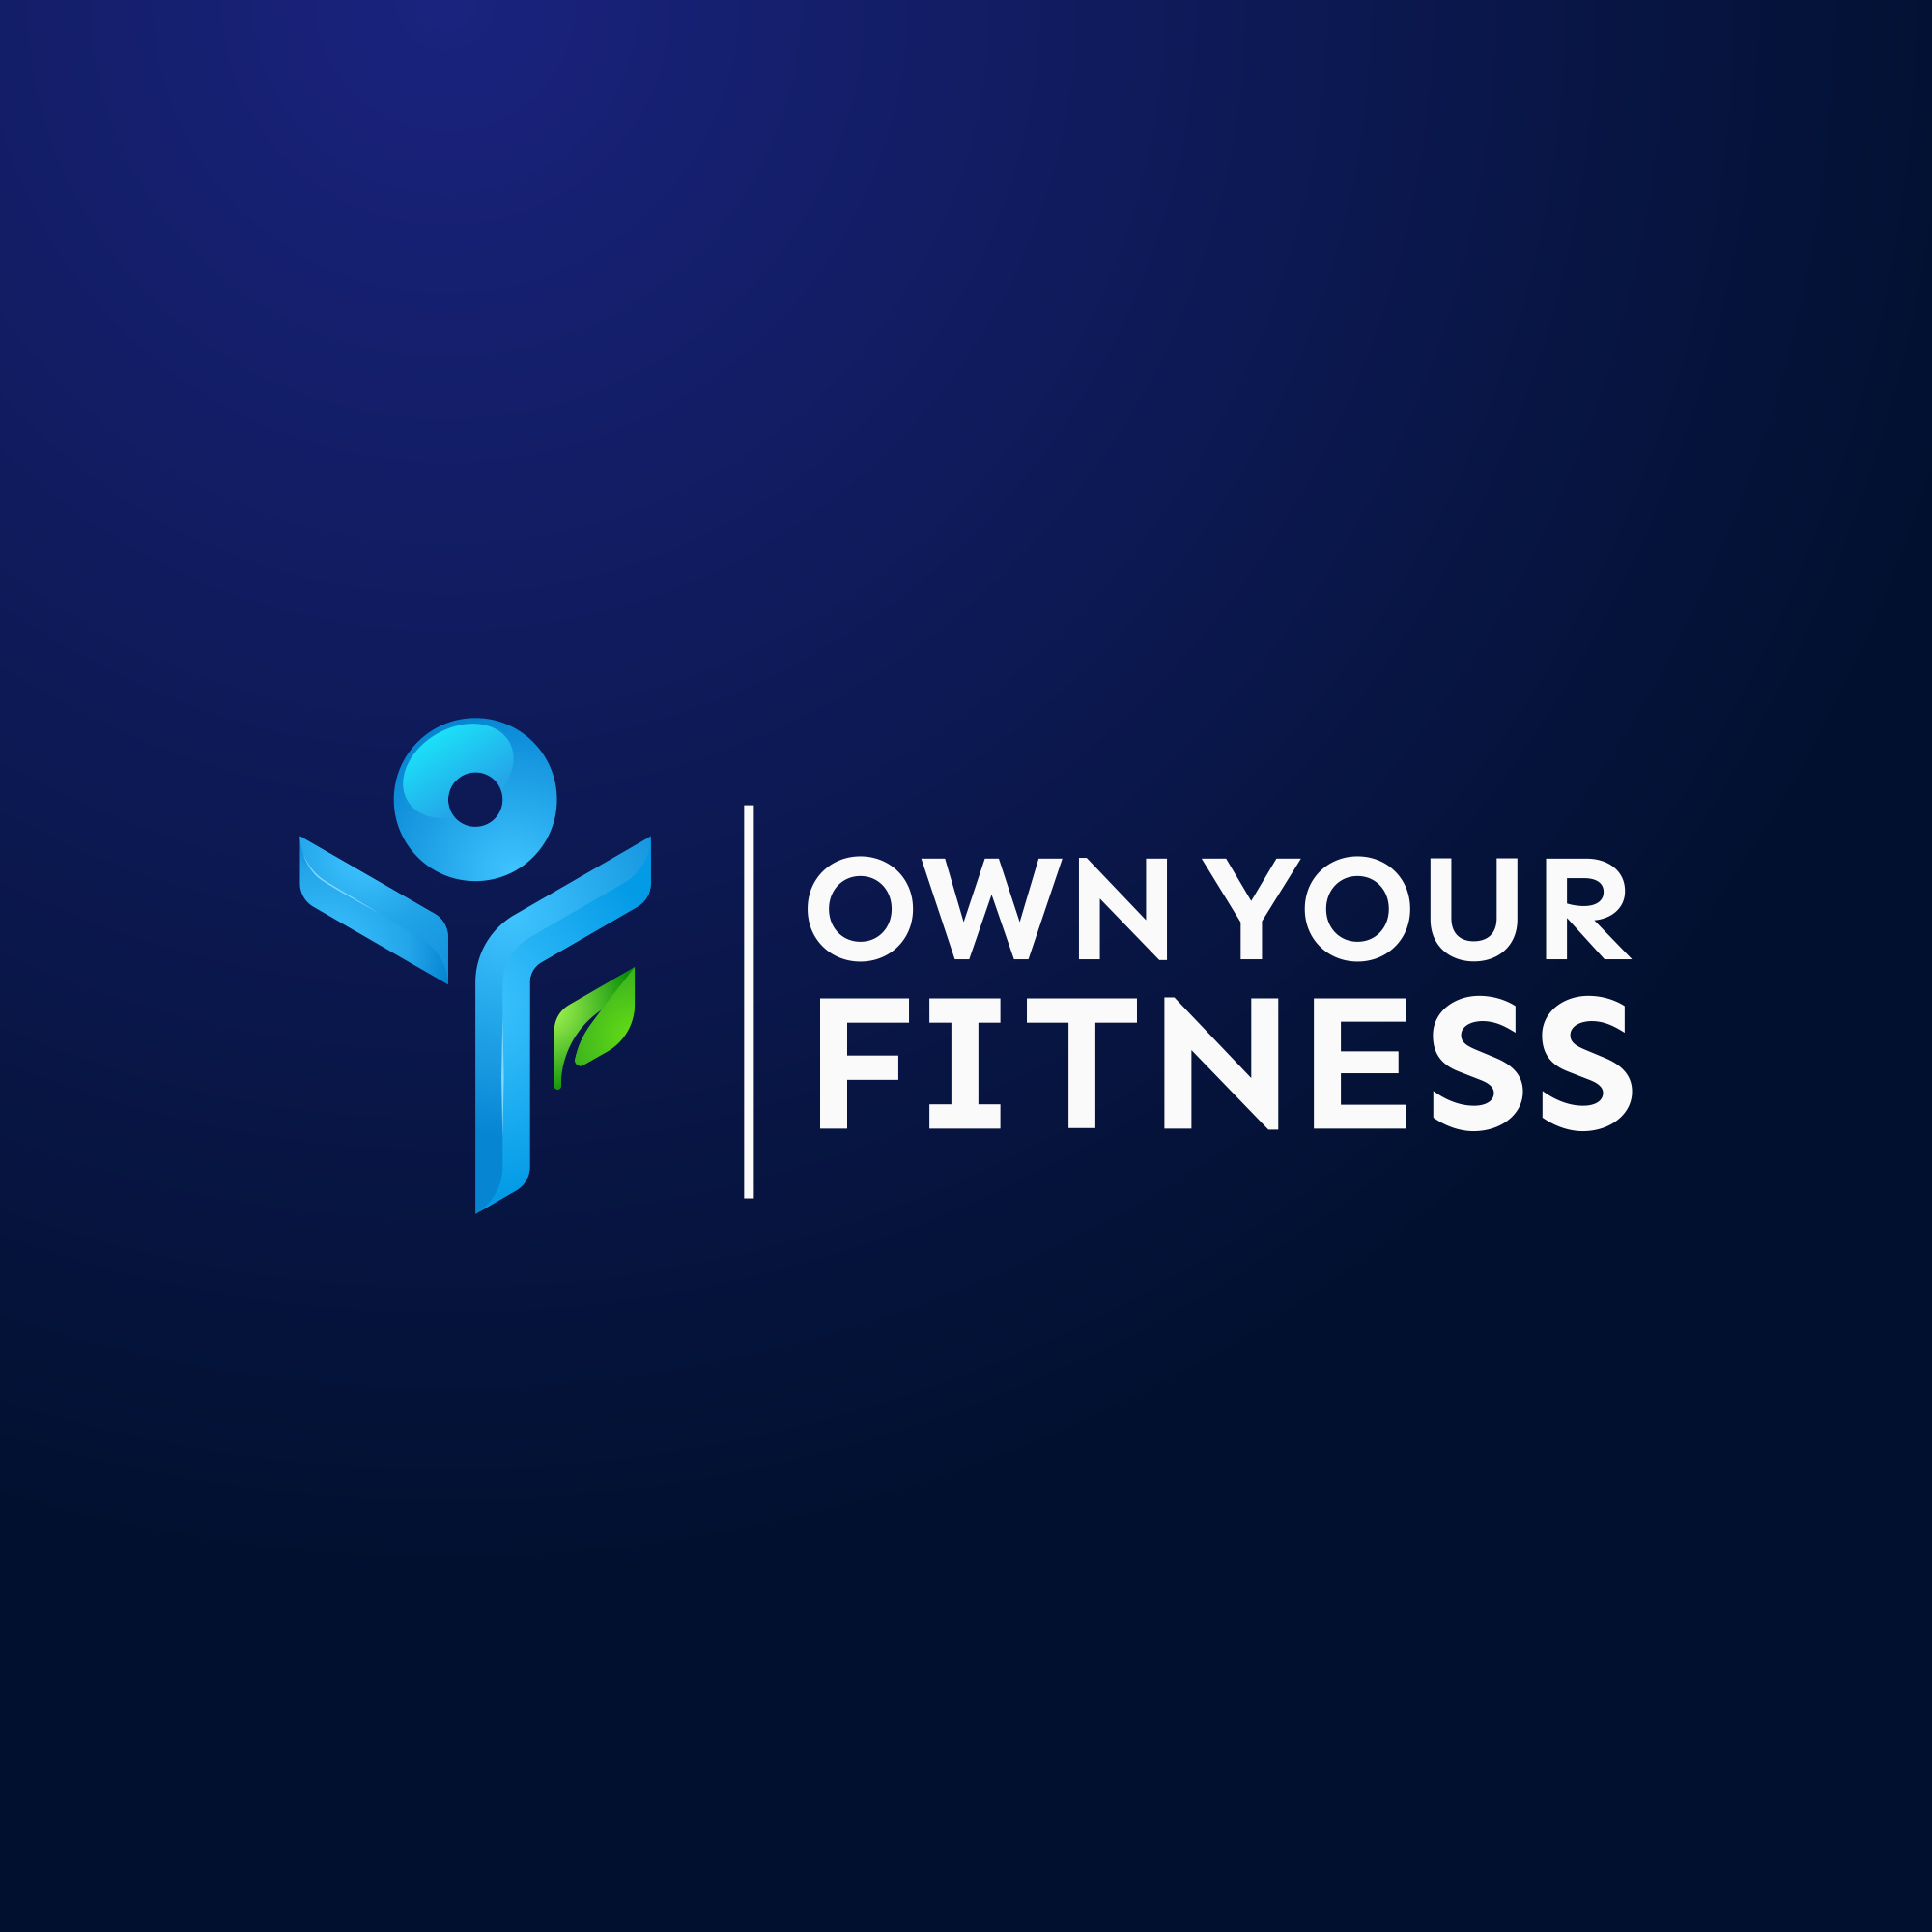 Create a cool, quirky, fun logo for a growing PERSONAL TRAINING, FITNESS and NUTRITION brand.